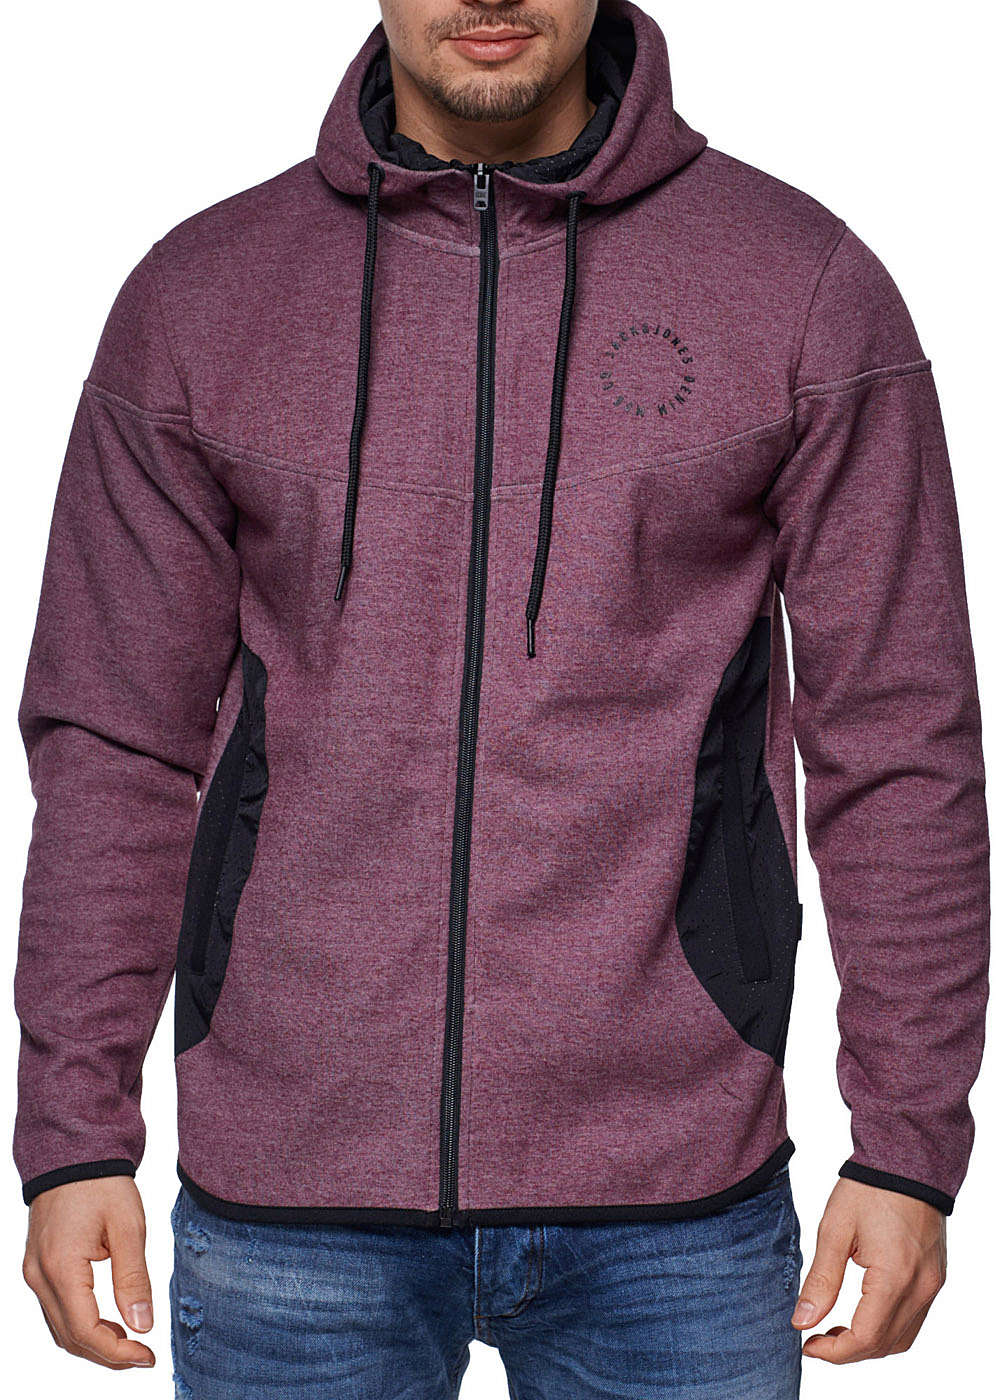 jack and jones zip hoodie 2 taschen kapuze kordelzug patches fig rot melange 77onlineshop. Black Bedroom Furniture Sets. Home Design Ideas